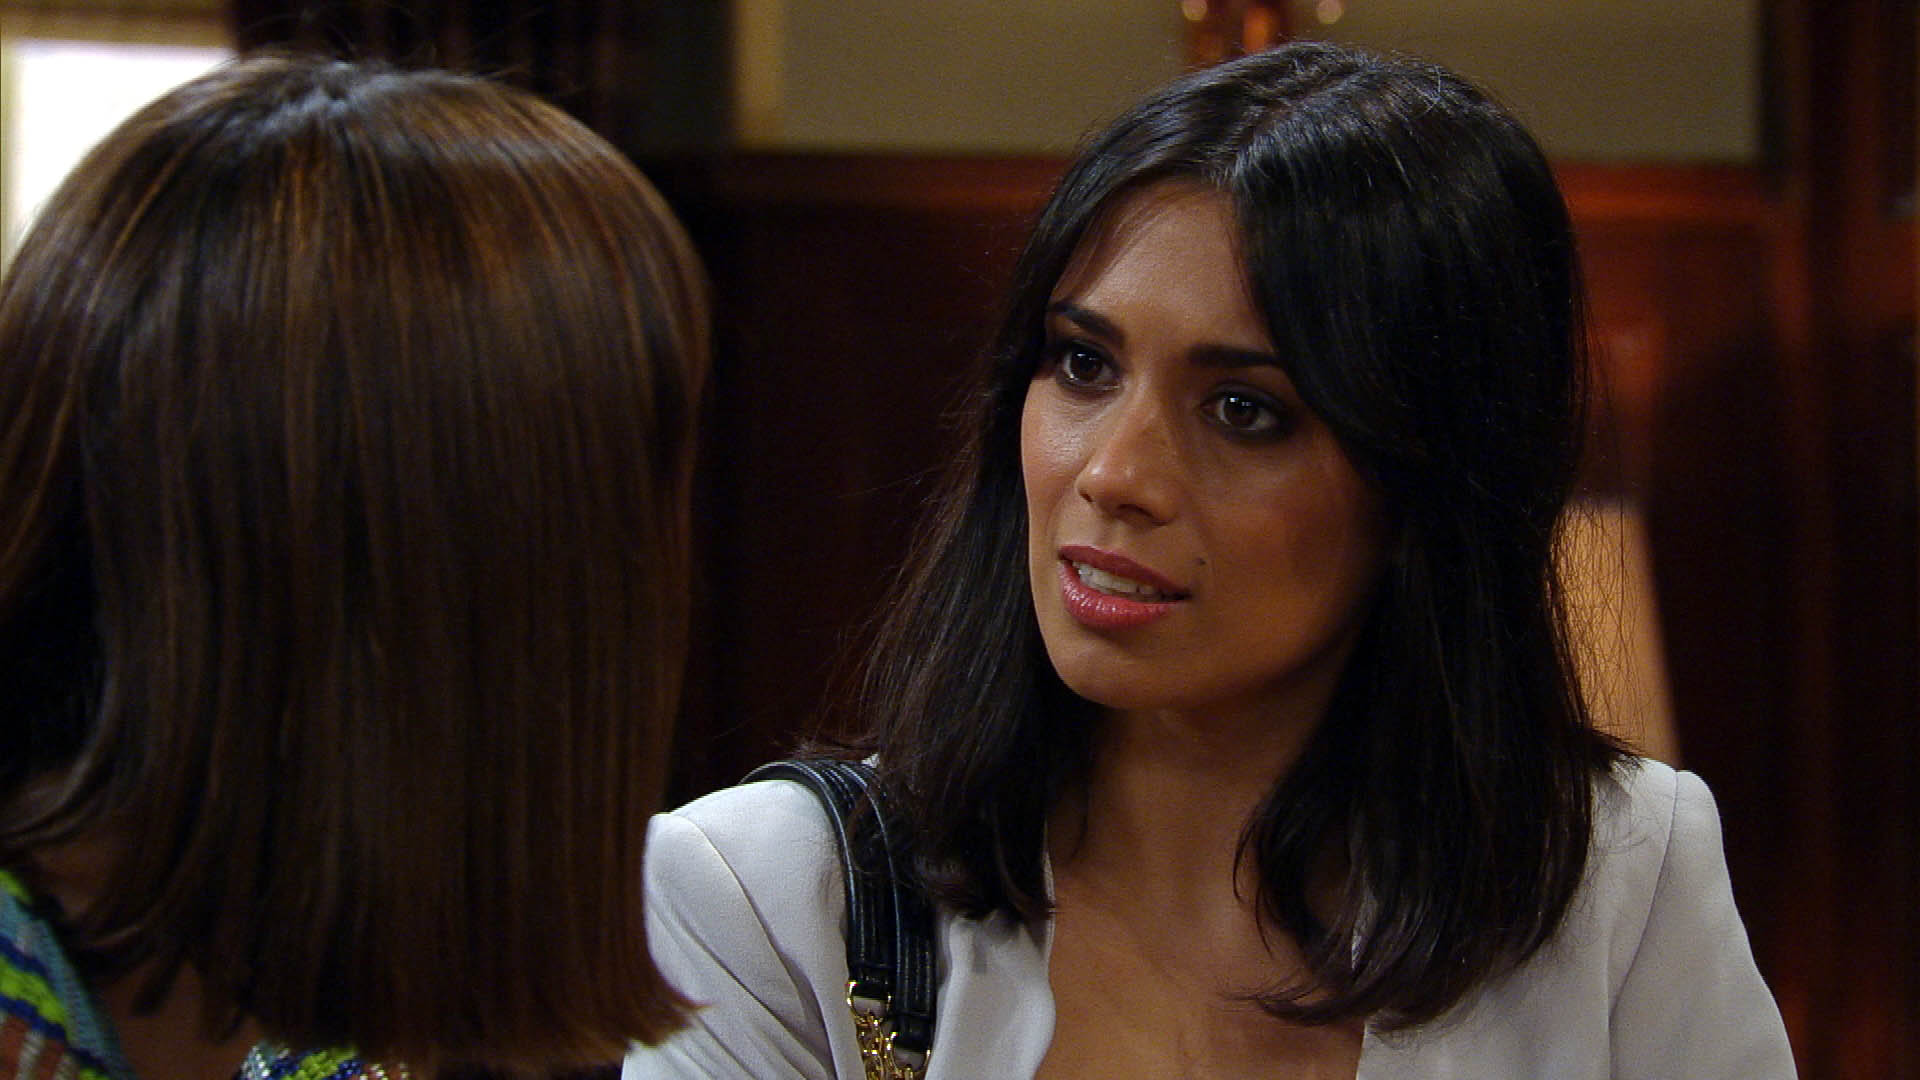 FROM ITV STRICT EMBARGO - NO USE BEFORE TUESDAY 16 AUGUST 2016 Emmerdale - Ep 7596 Wednesday 24 August 2016 Chrissie White [LOUISE MARWOOD] tells a shocked Priya Sharma [FIONA WADE] she hasn't bought the Mill but Priya thinks it's because Rakesh wouldn't sleep with her. Chrissie's furious but it's not far from the truth... Picture contact: david.crook@itv.com on 0161 952 6214 This photograph is (C) ITV Plc and can only be reproduced for editorial purposes directly in connection with the programme or event mentioned above, or ITV plc. Once made available by ITV plc Picture Desk, this photograph can be reproduced once only up until the transmission [TX] date and no reproduction fee will be charged. Any subsequent usage may incur a fee. This photograph must not be manipulated [excluding basic cropping] in a manner which alters the visual appearance of the person photographed deemed detrimental or inappropriate by ITV plc Picture Desk. This photograph must not be syndicated to any other company, publication or website, or permanently archived, without the express written permission of ITV Plc Picture Desk. Full Terms and conditions are available on the website www.itvpictures.com